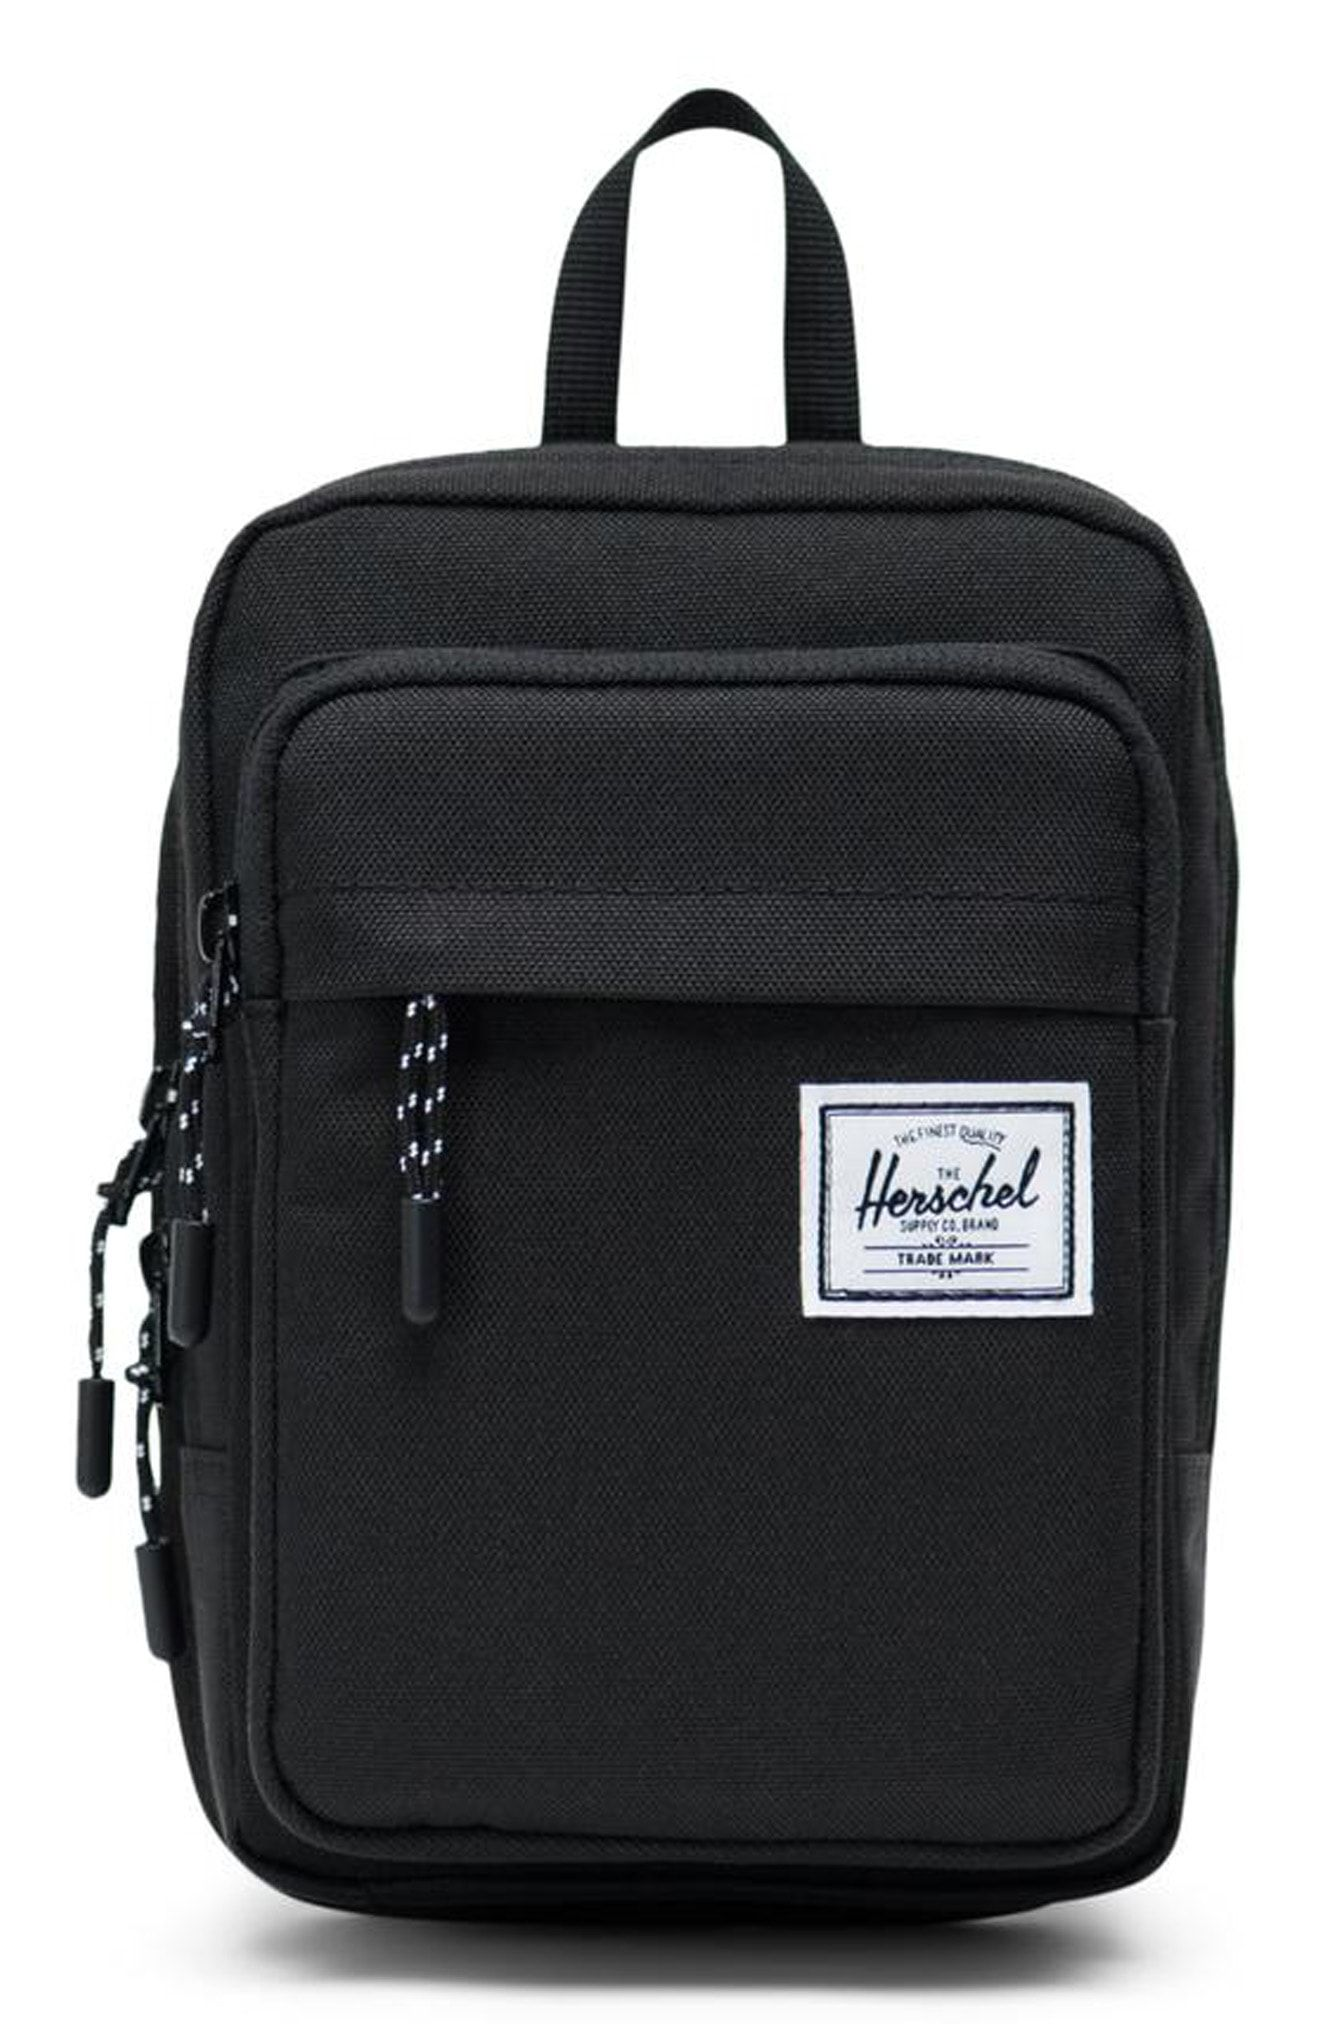 c9664982347b HERSCHEL SUPPLY CO. LARGE FORM SHOULDER BAG - BLACK.  herschelsupplyco.   bags  shoulder bags